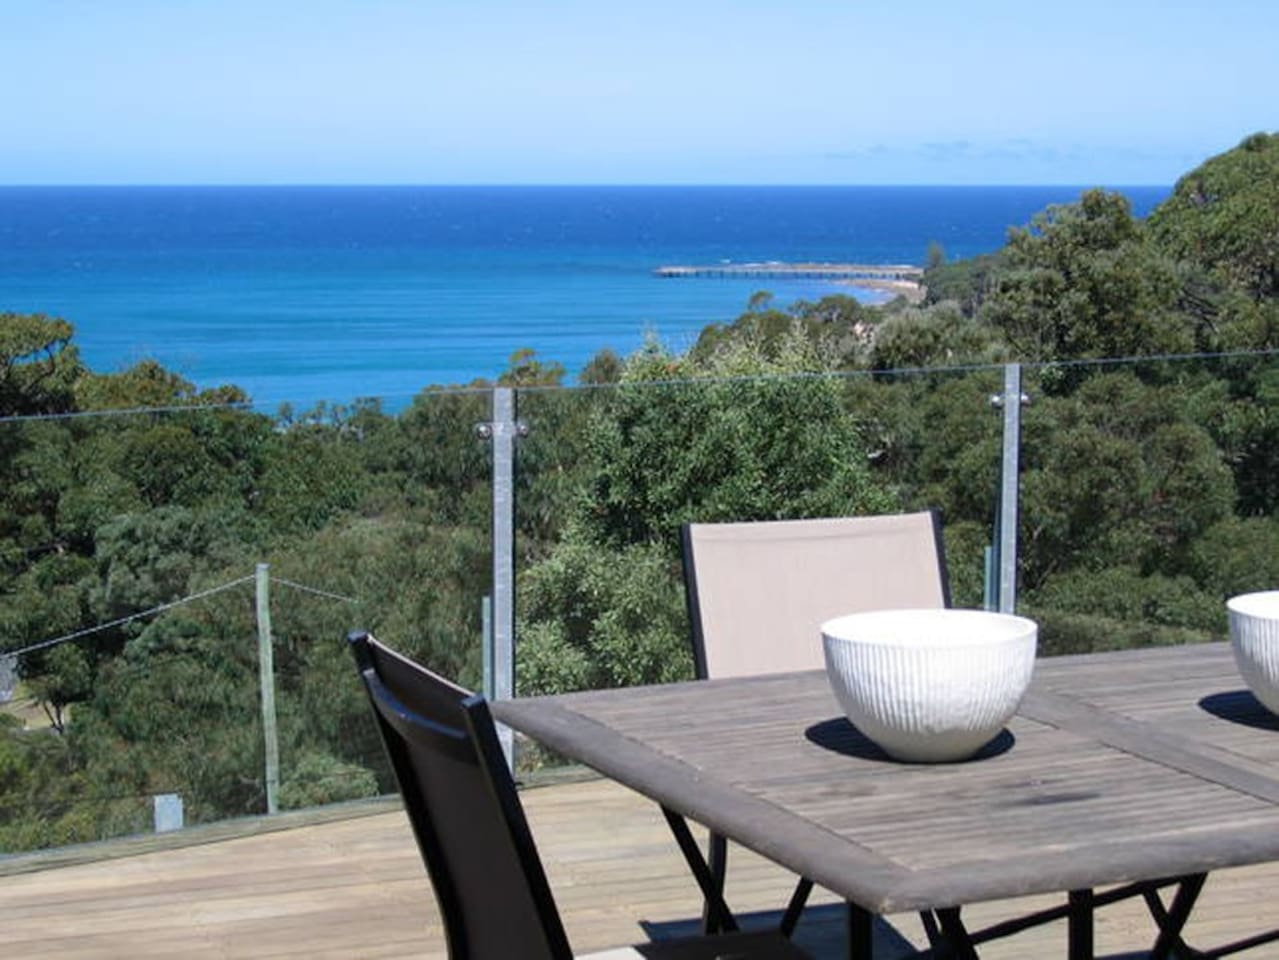 The 60 square metre deck stands 7 metres high giving a comanding view over the treetops to the bay.